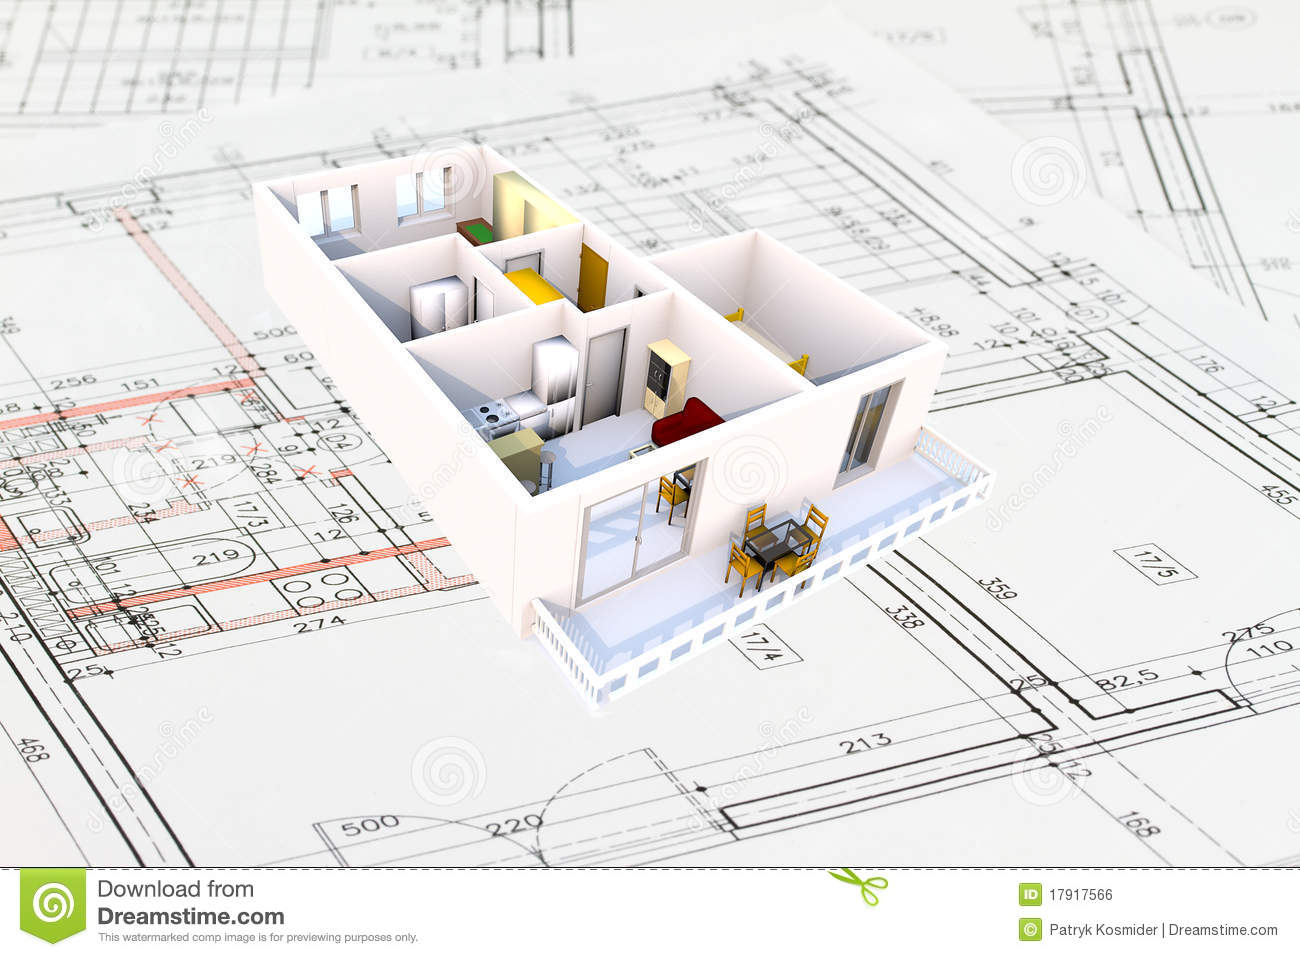 Plan de l 39 appartement 3d image libre de droits image for Architecture de plan libre